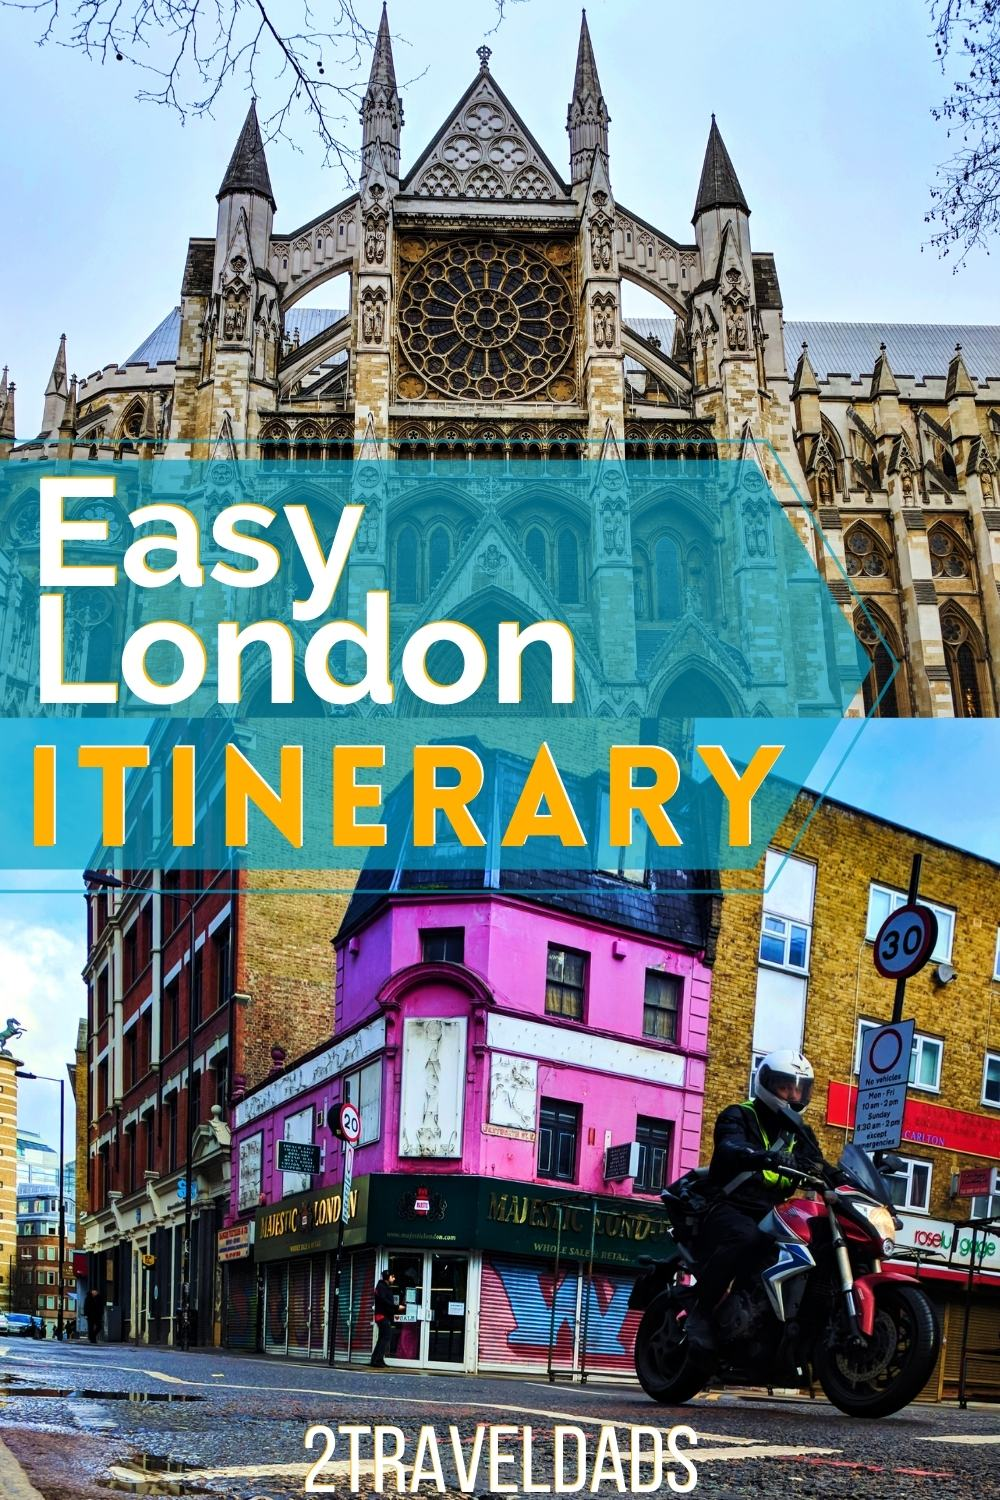 Easy London itinerary for seeing the most iconic sights, best museums and hidden gems that make London so special. Tips for solo or group travel, including fun food to watch for and local markets.